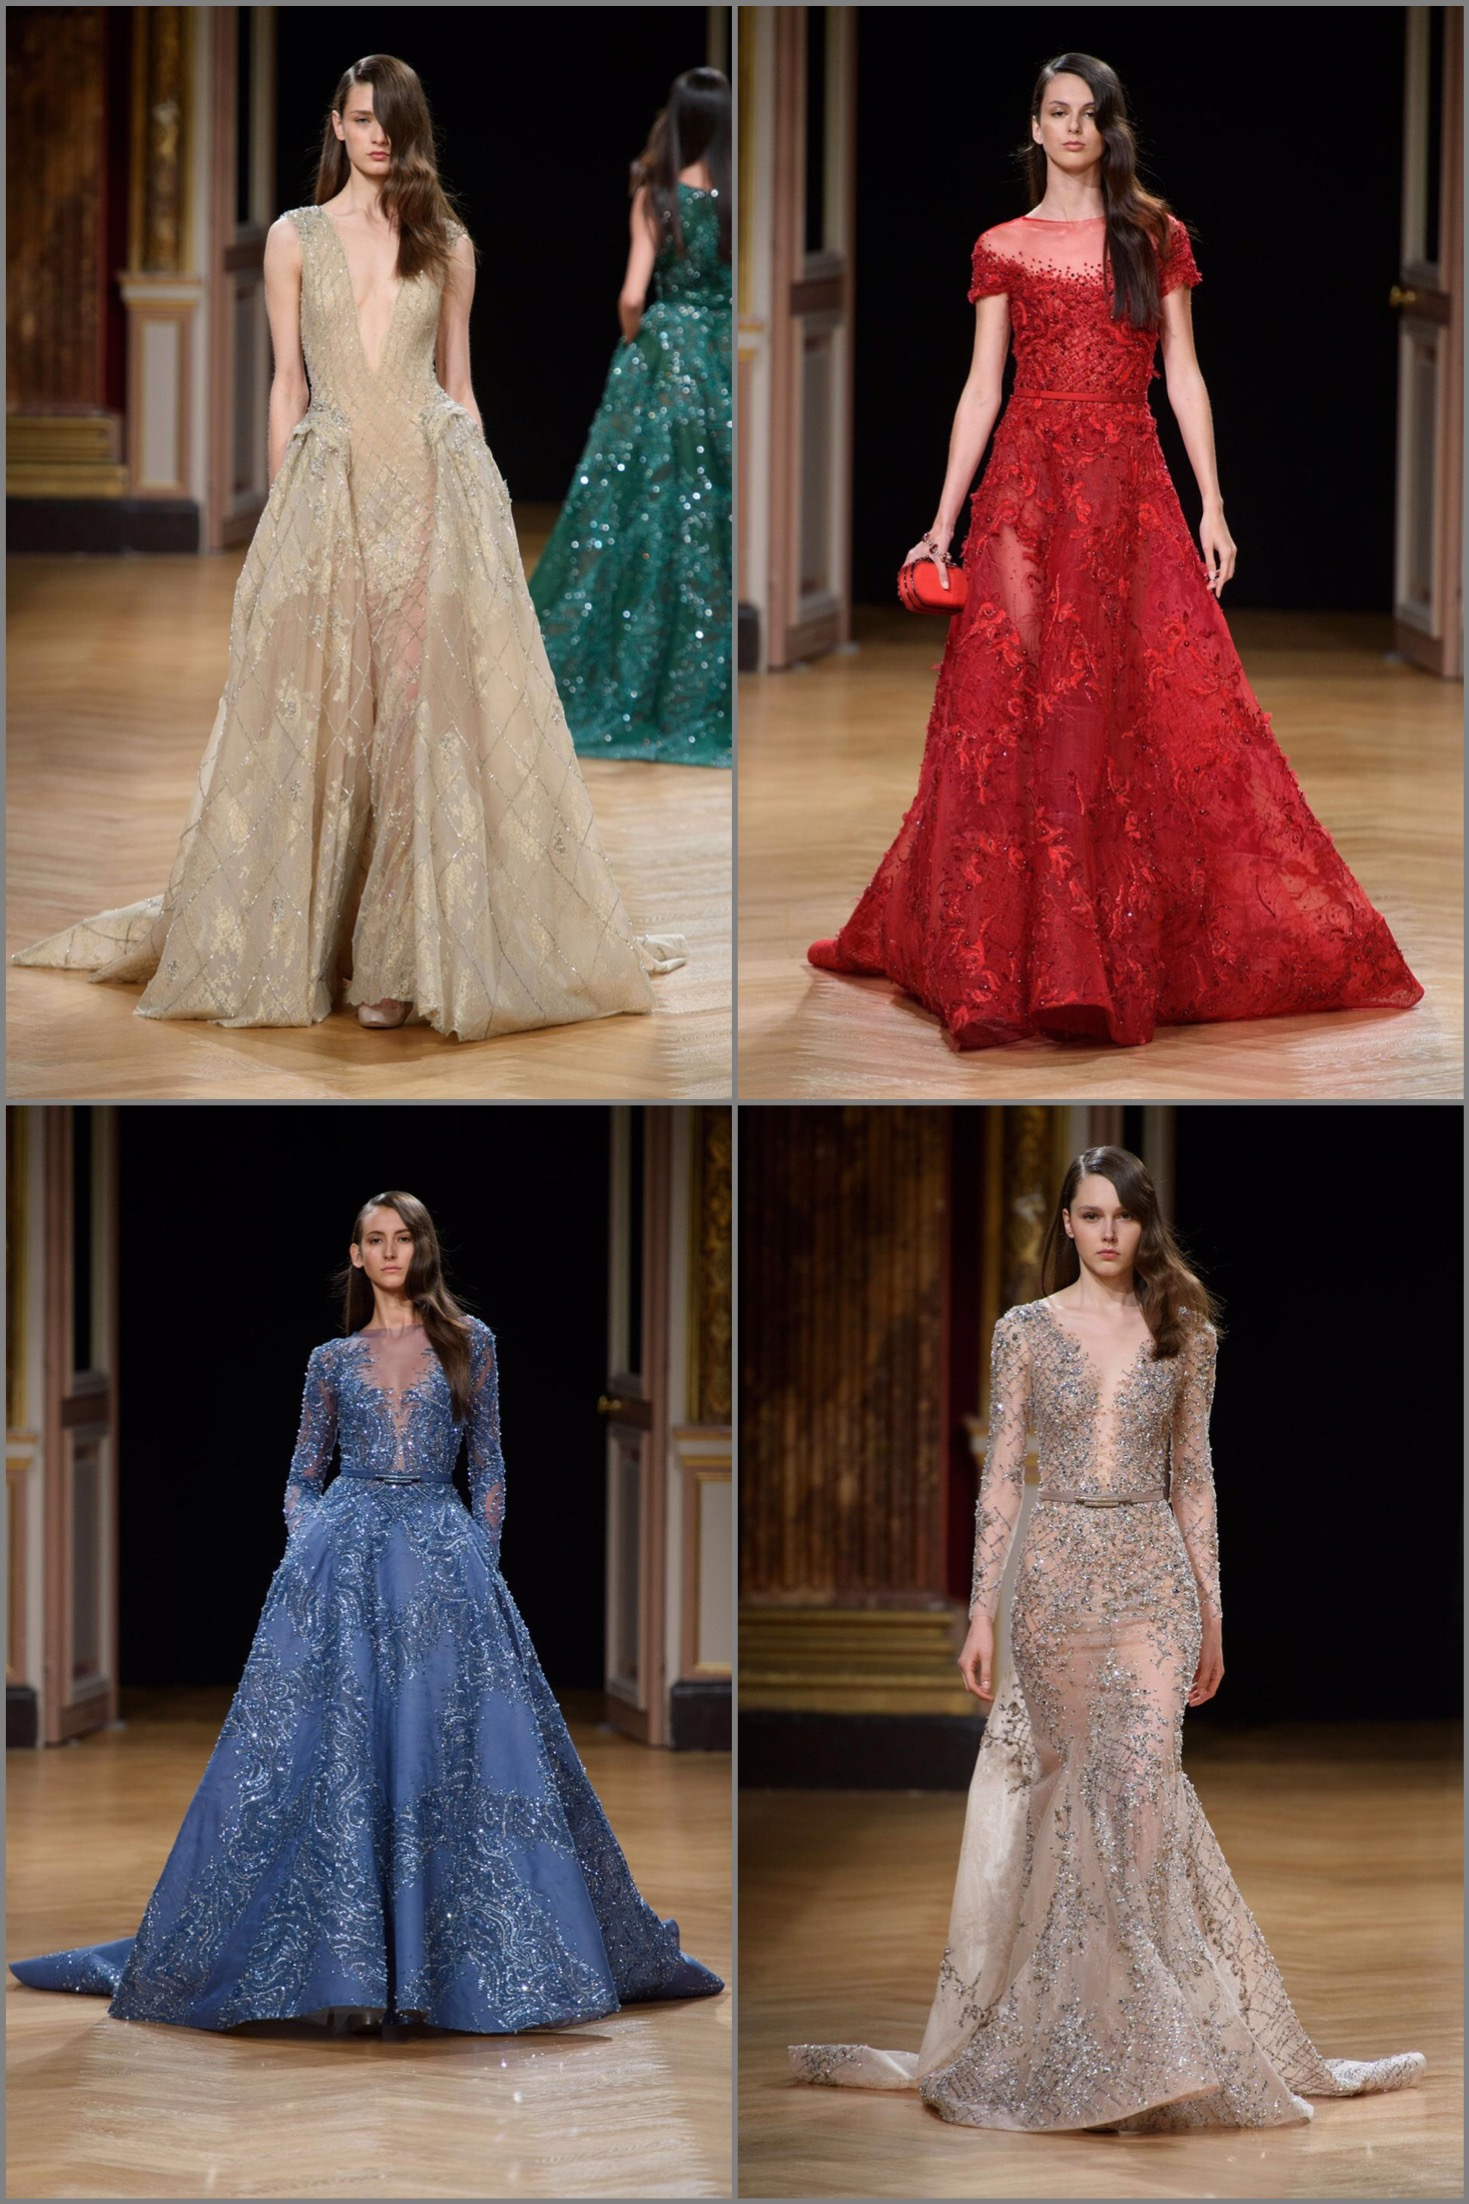 Paris Couture Week Fall Winter 2016-2017 - Ziad Nakad